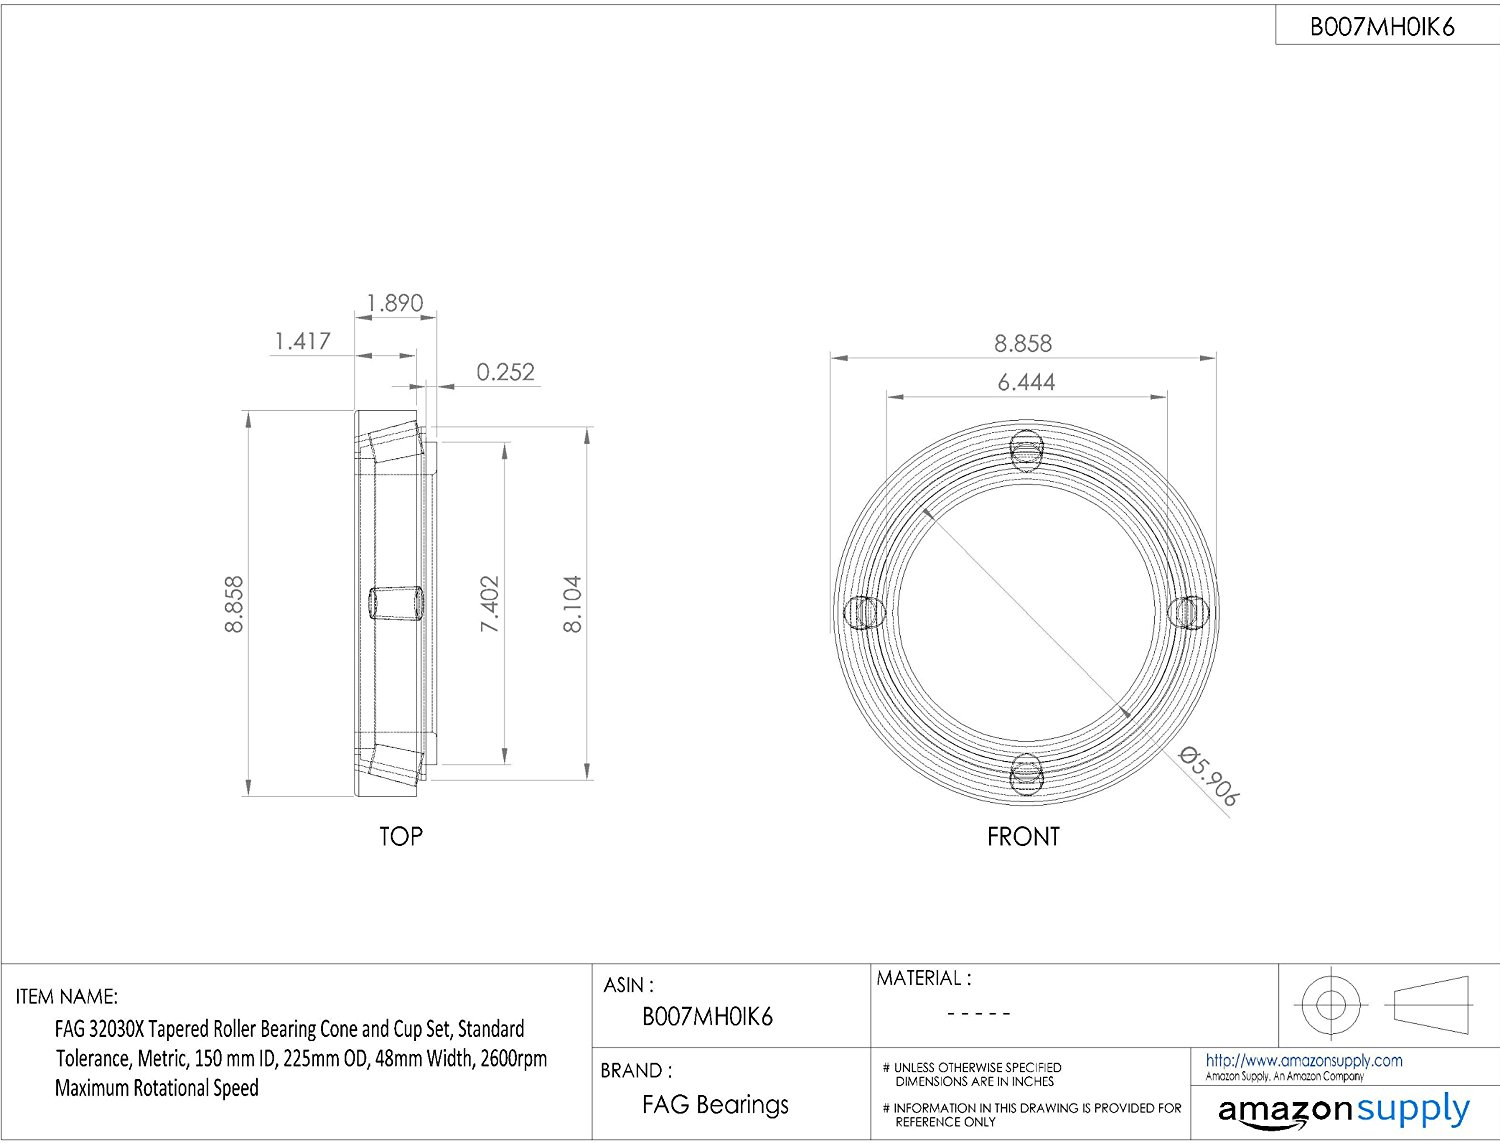 Rcs Sure 100 Wiring Diagram Gallery Sample Dimensions Download Inspirational Fag X Tapered